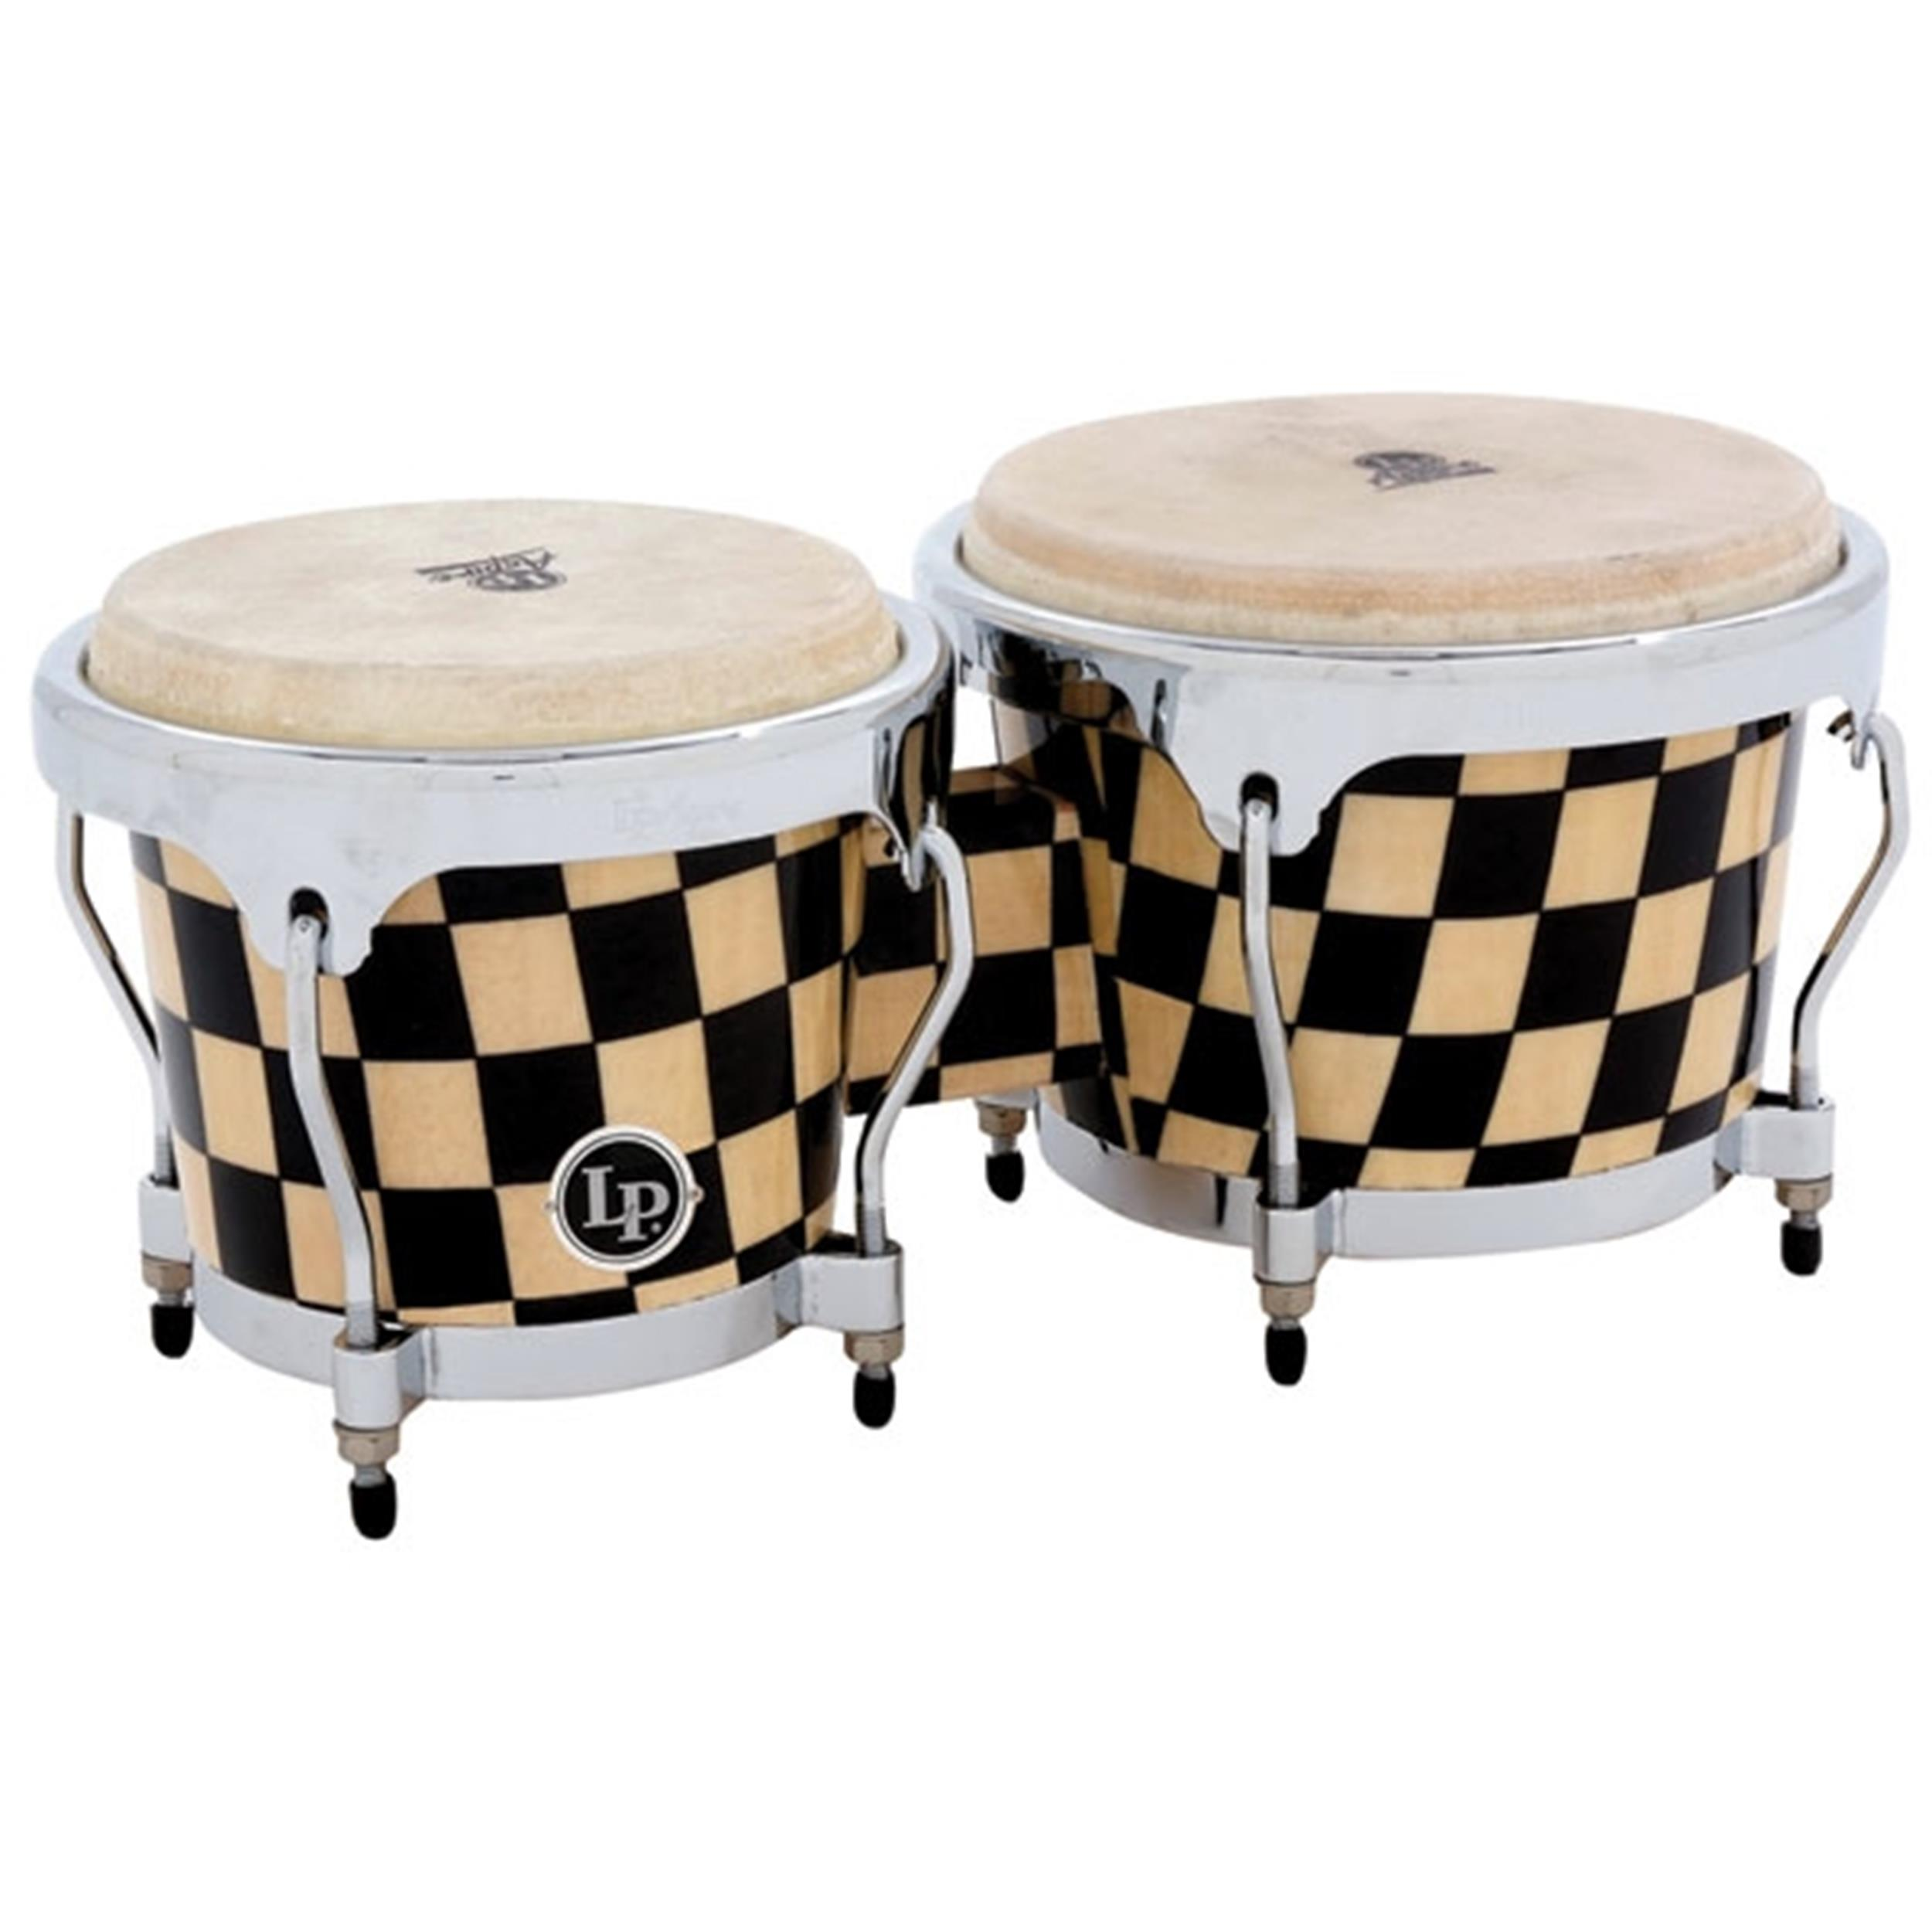 LATIN PERCUSSION LPA 601 CHKC BONGO BONGOS CHECKER BOARD